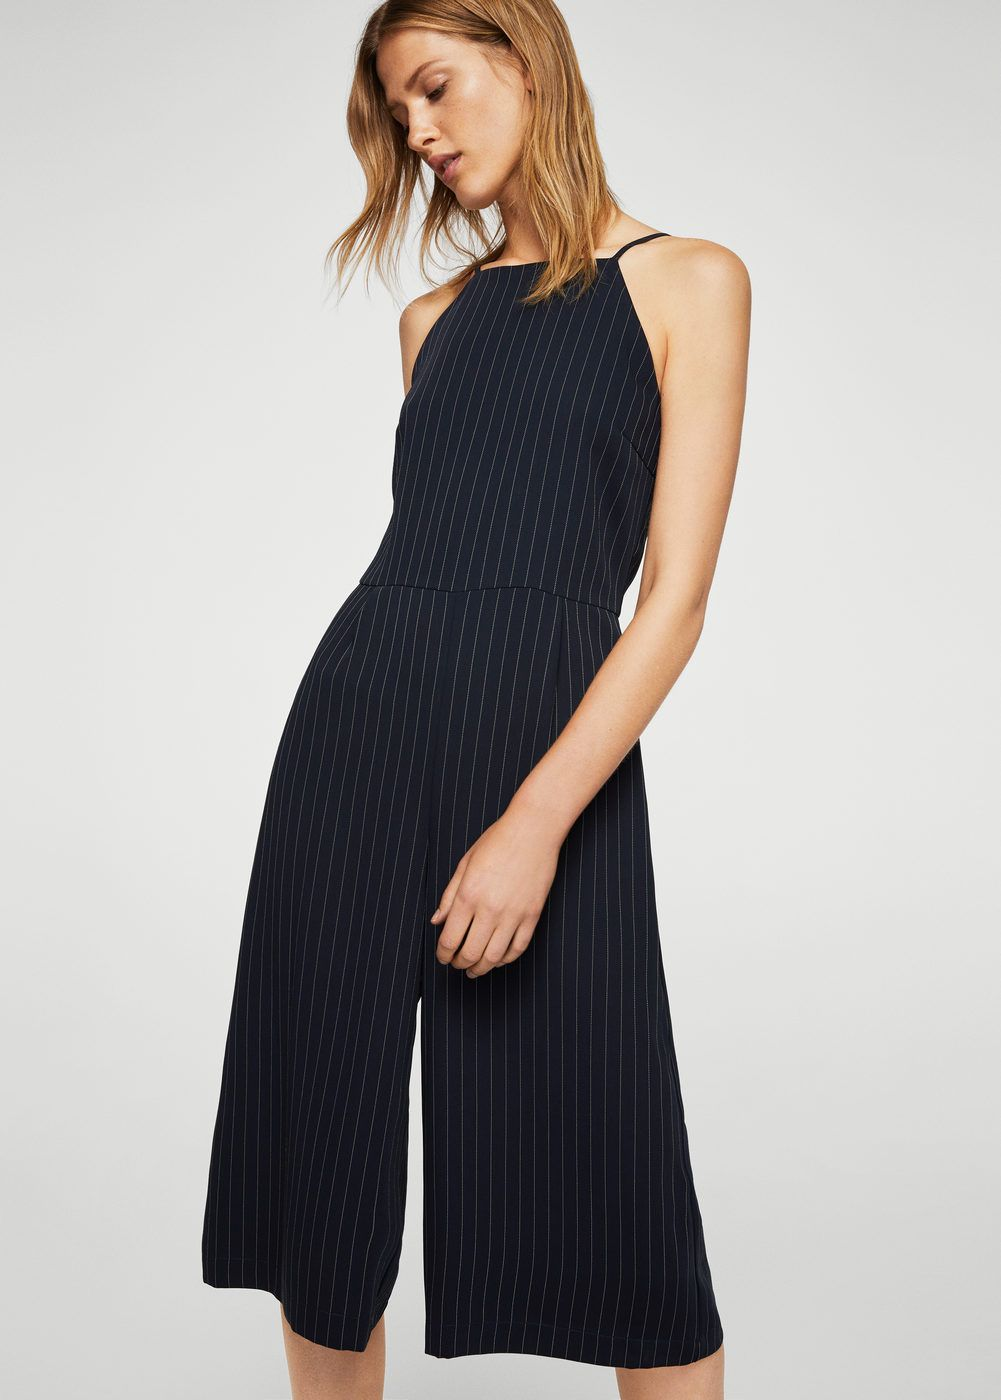 3664cf09e5 Striped jumpsuit - Women in 2019